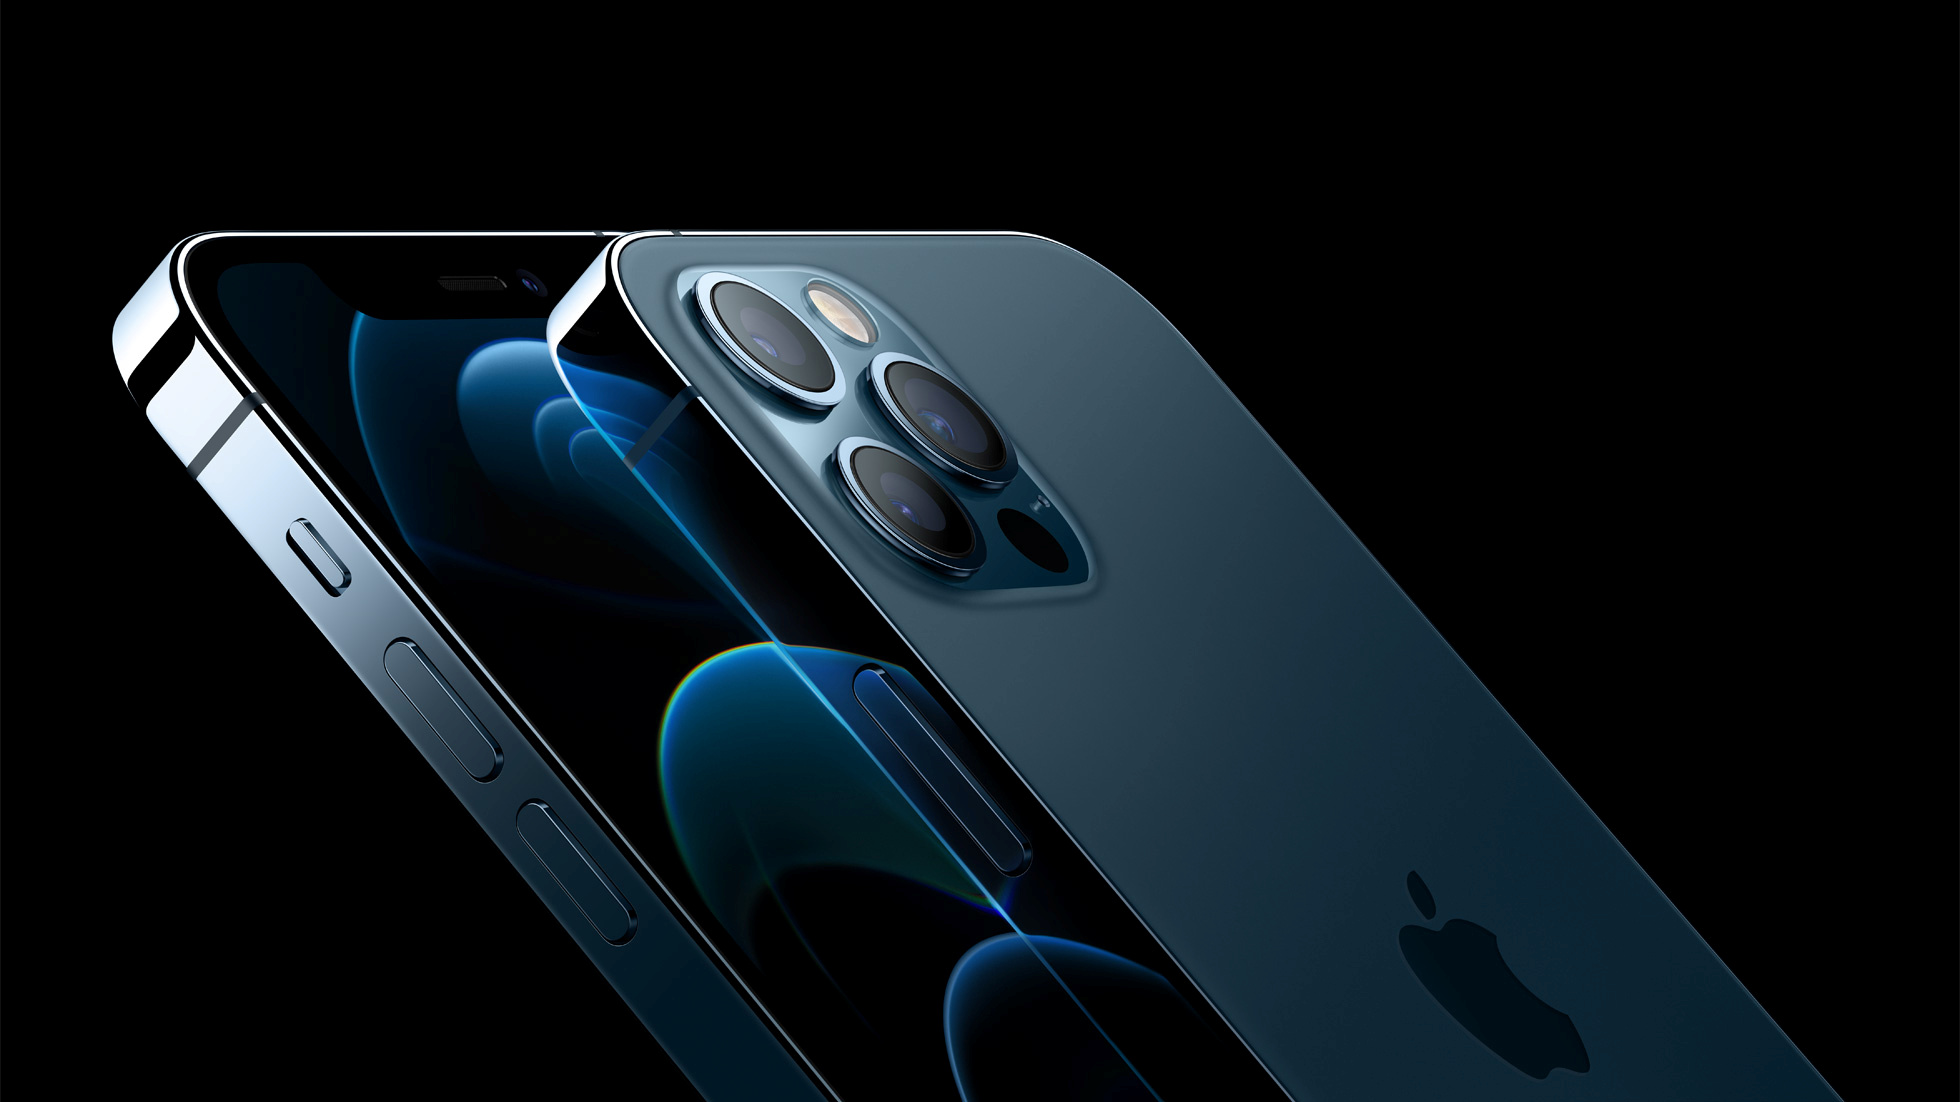 The iPhone 12 Pro Max comes with a tasty triple rear camera system